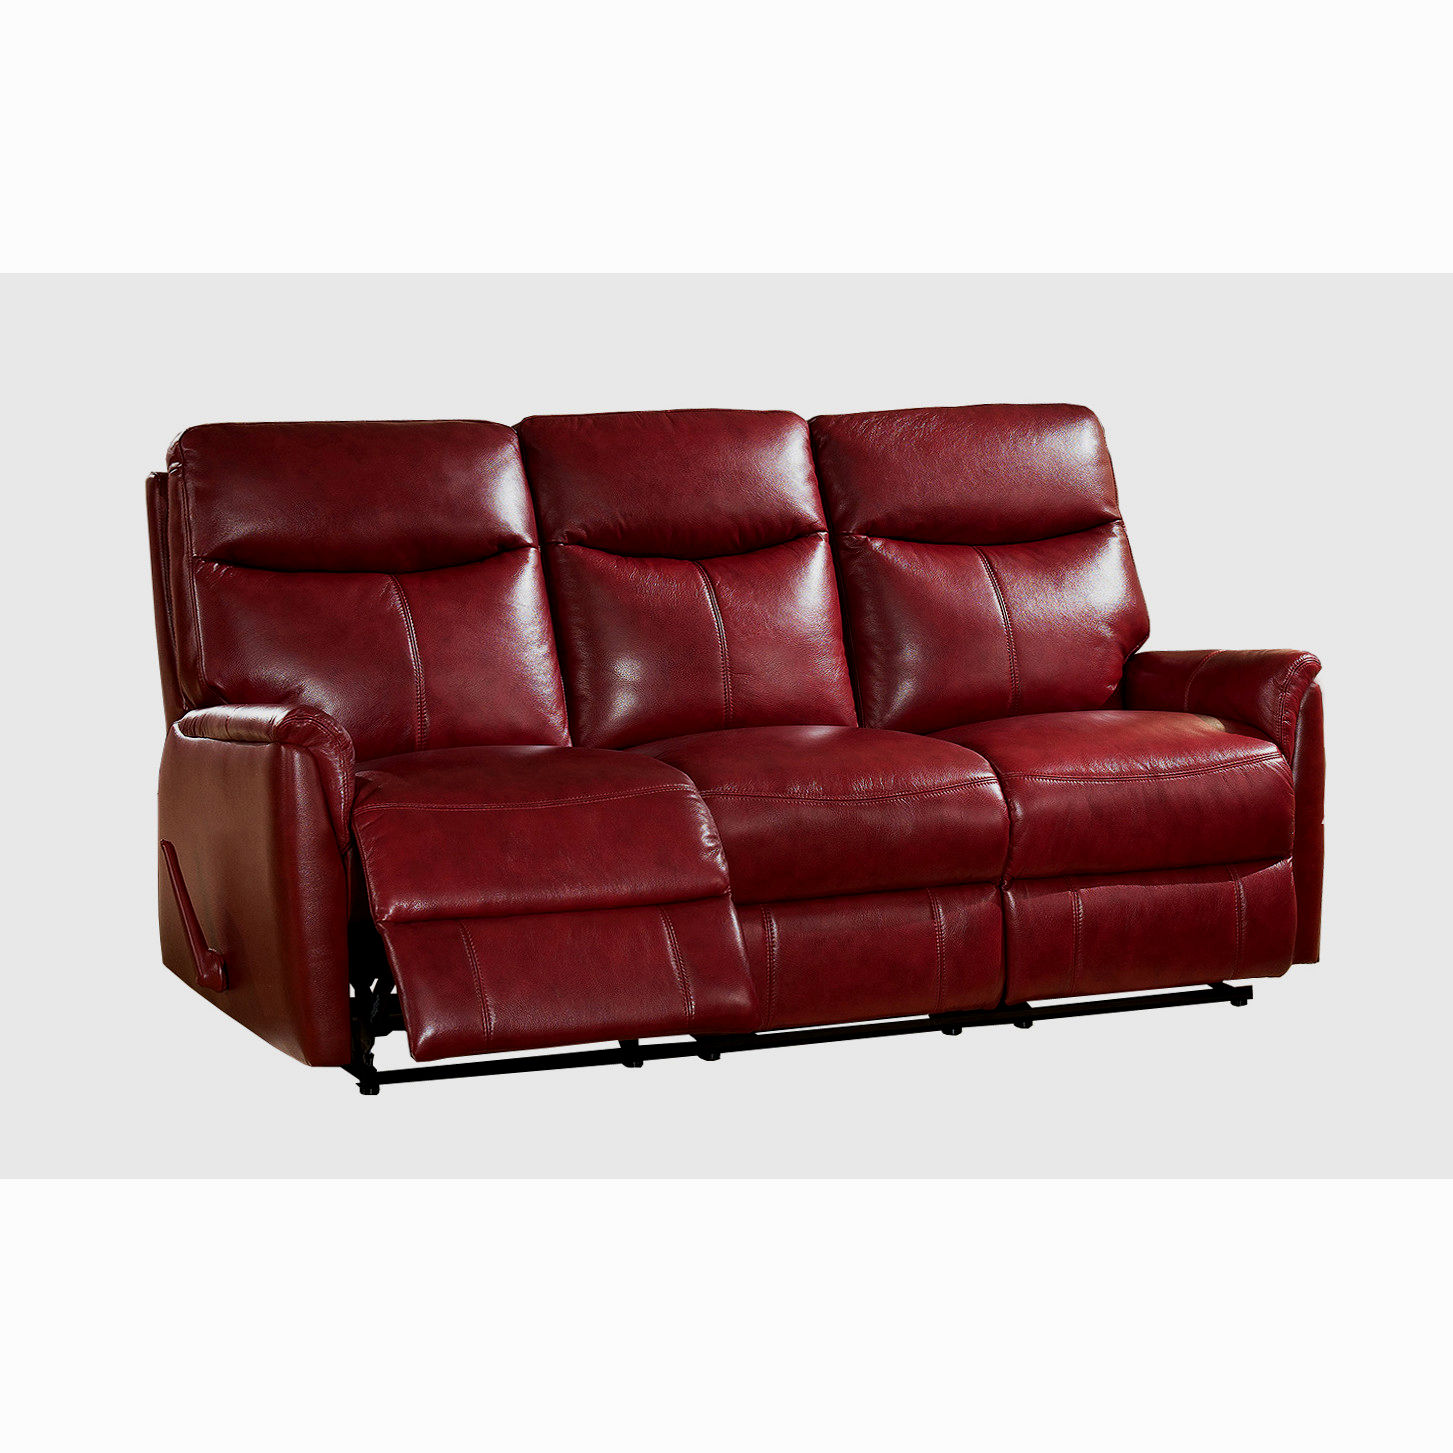 contemporary leather sofa and loveseat inspiration-Amazing Leather sofa and Loveseat Decoration